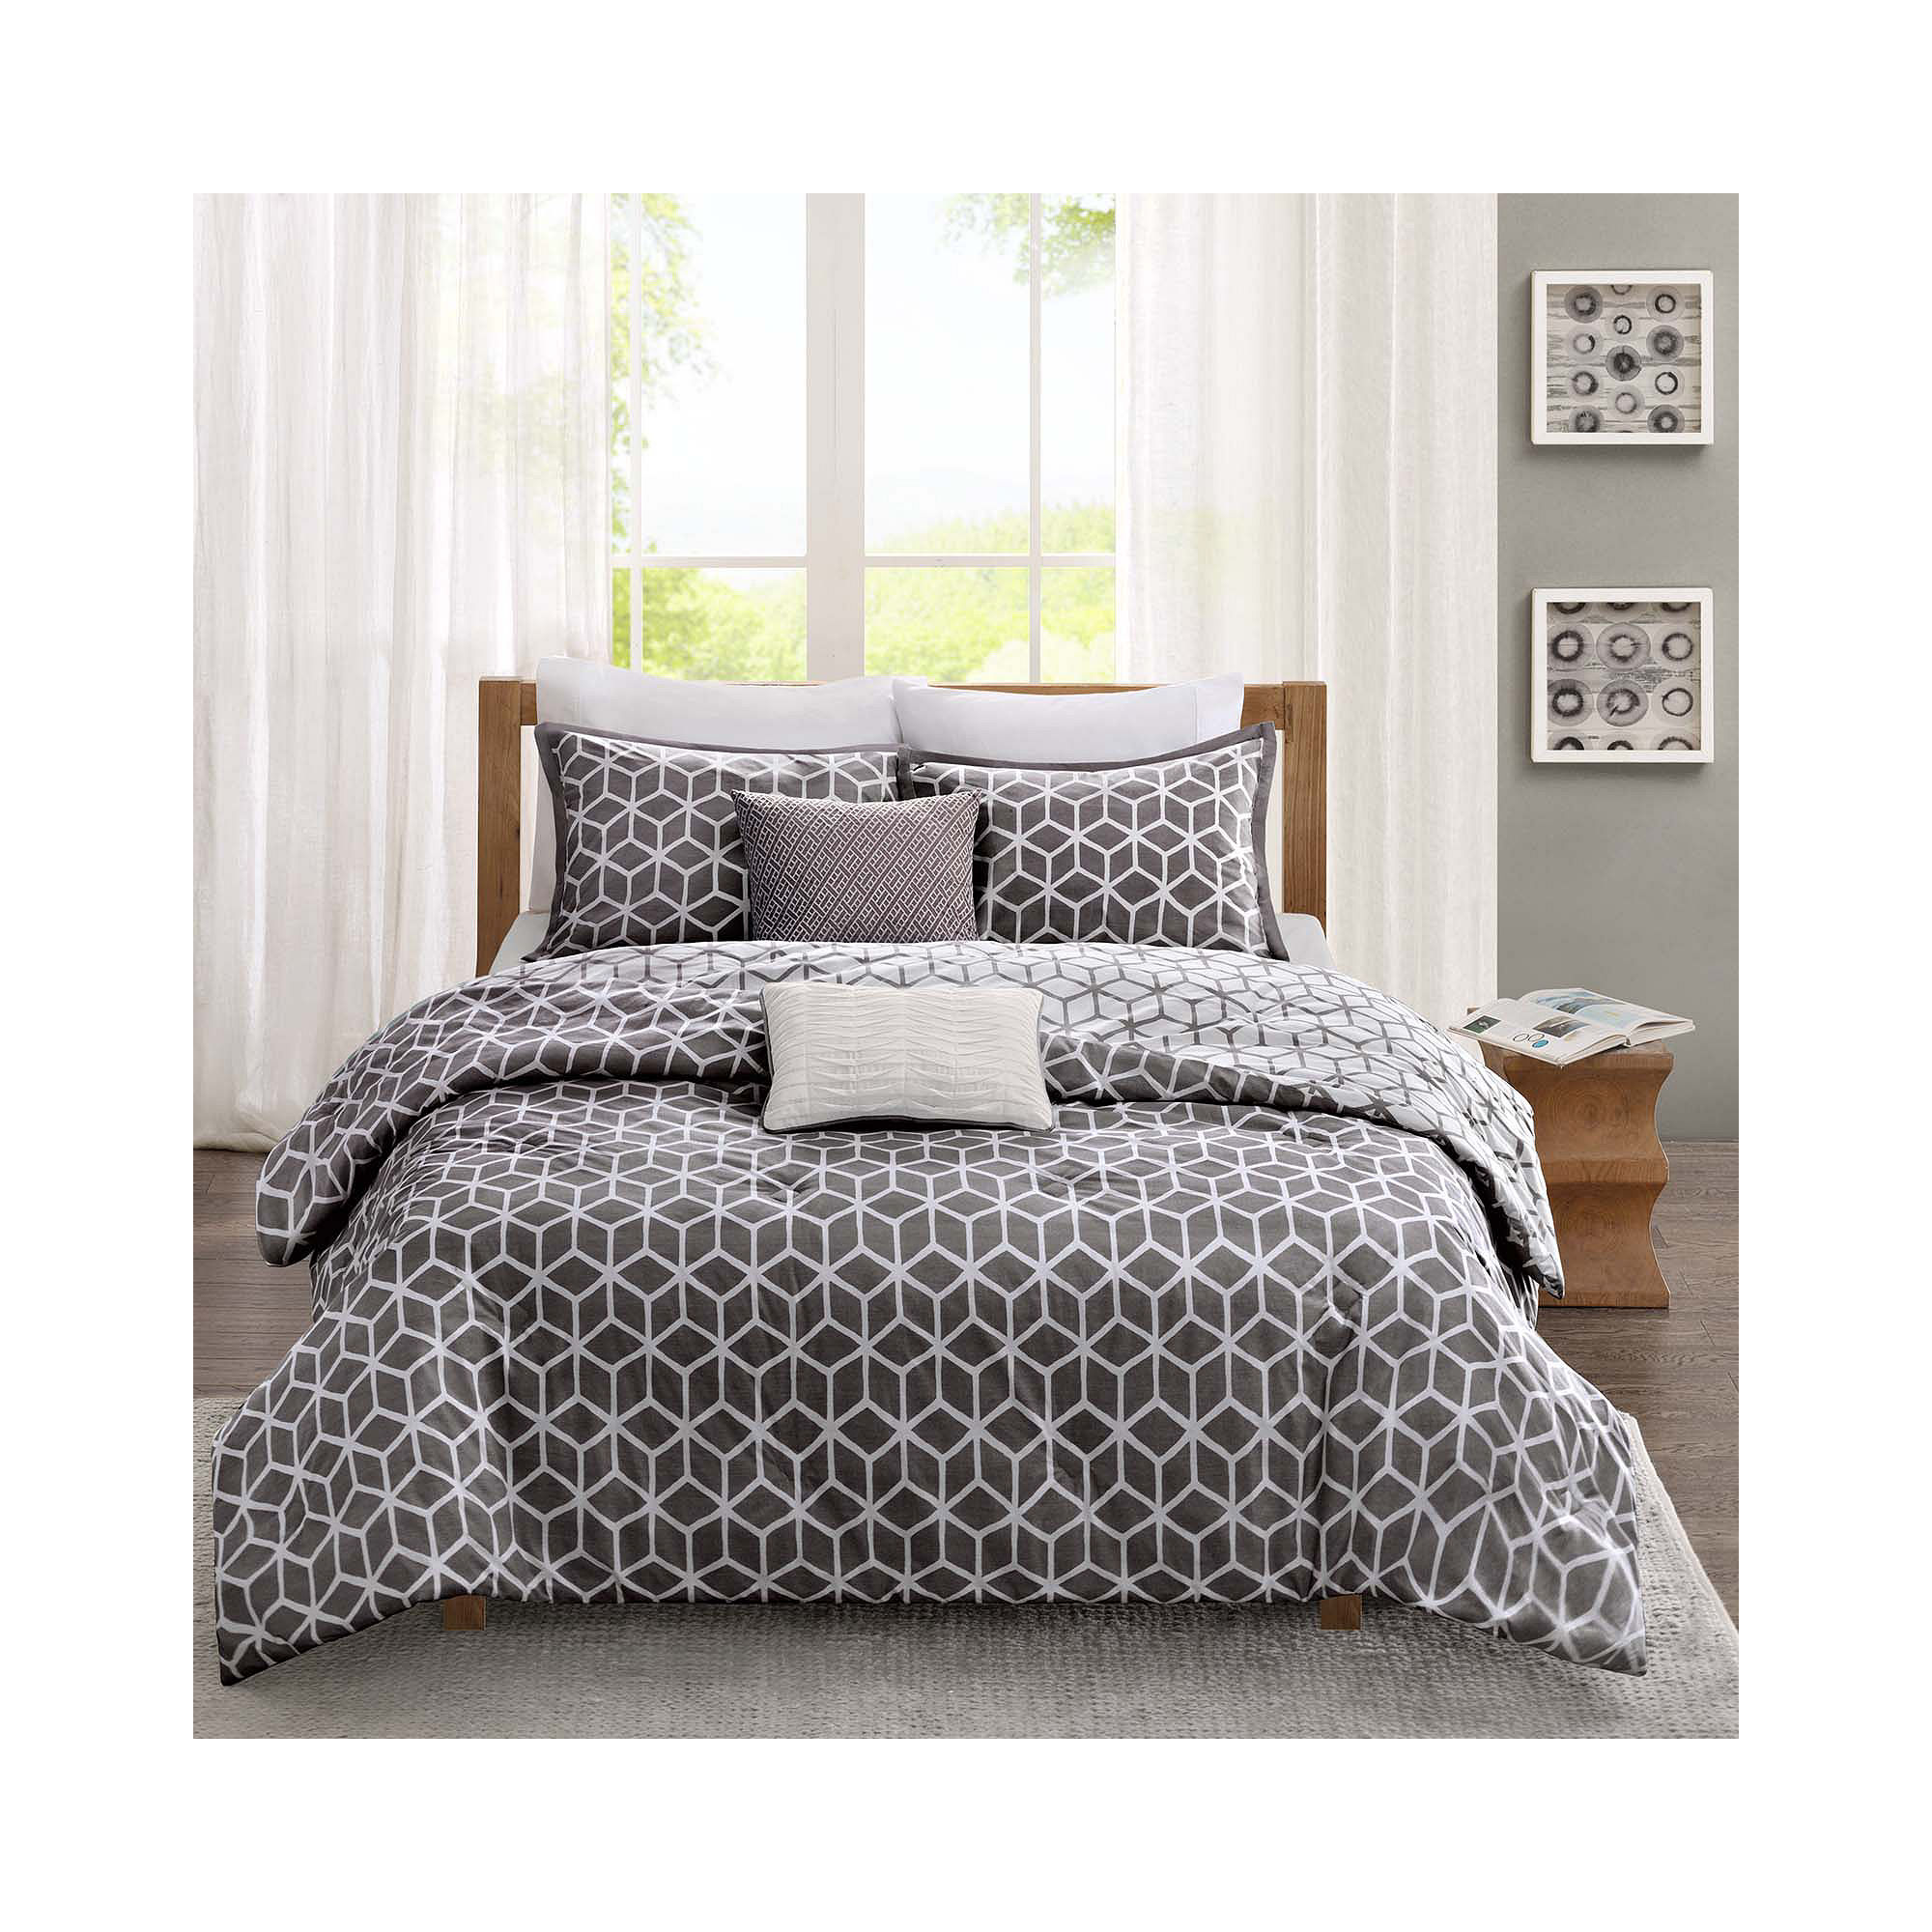 GET JCPenney Home Owl Garden Comforter Set LIMITED